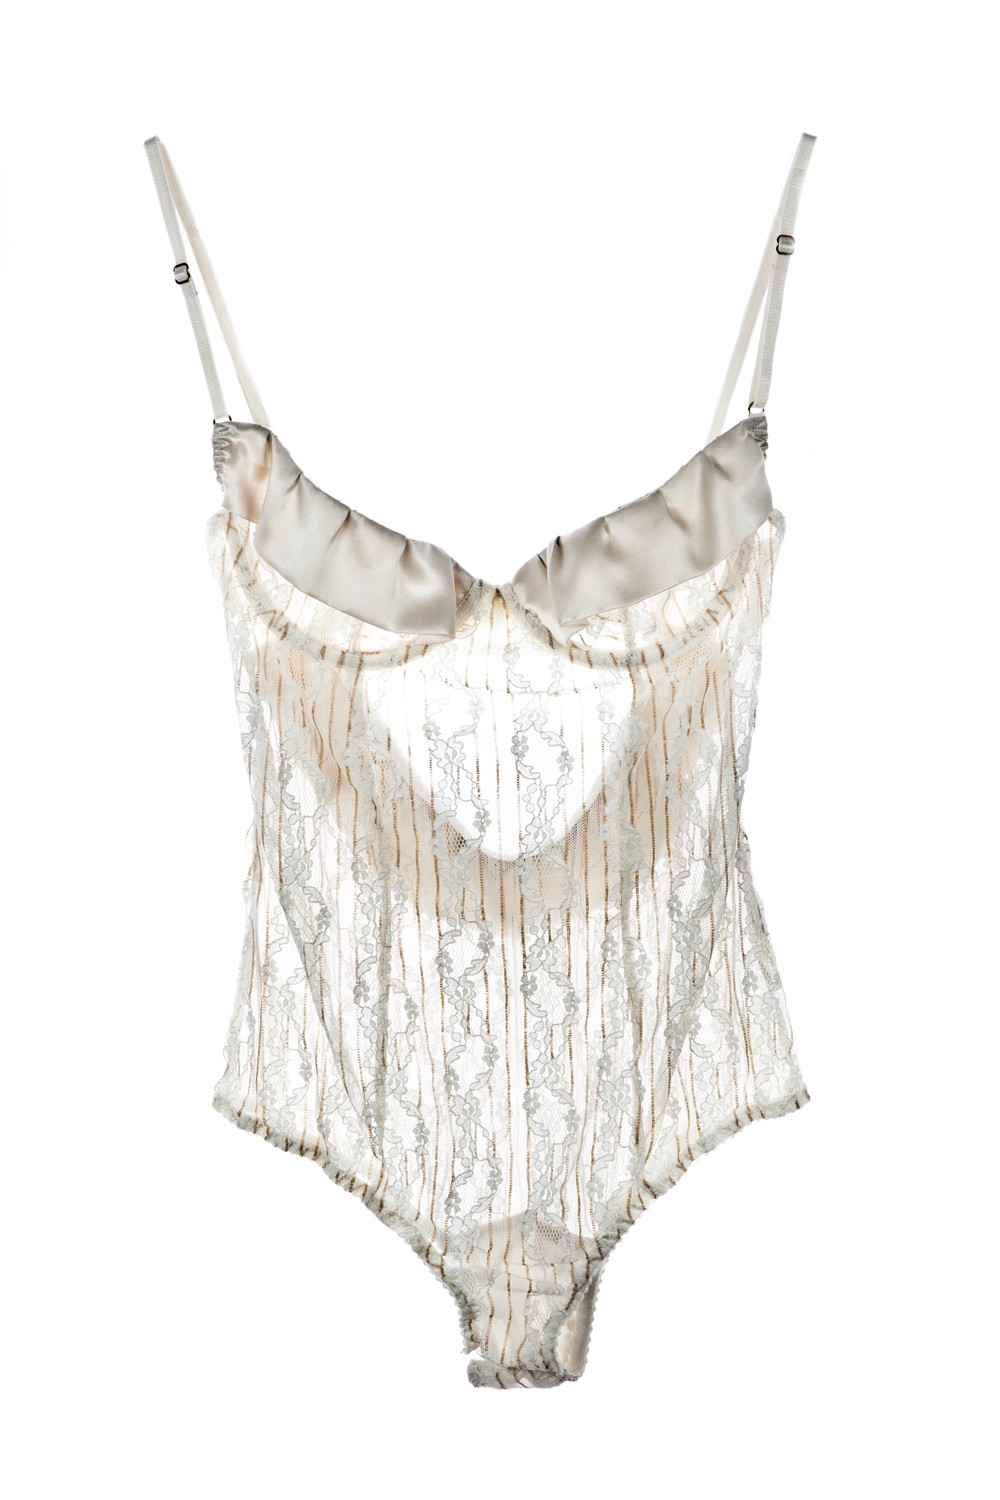 ell and cee underwire bodysuit